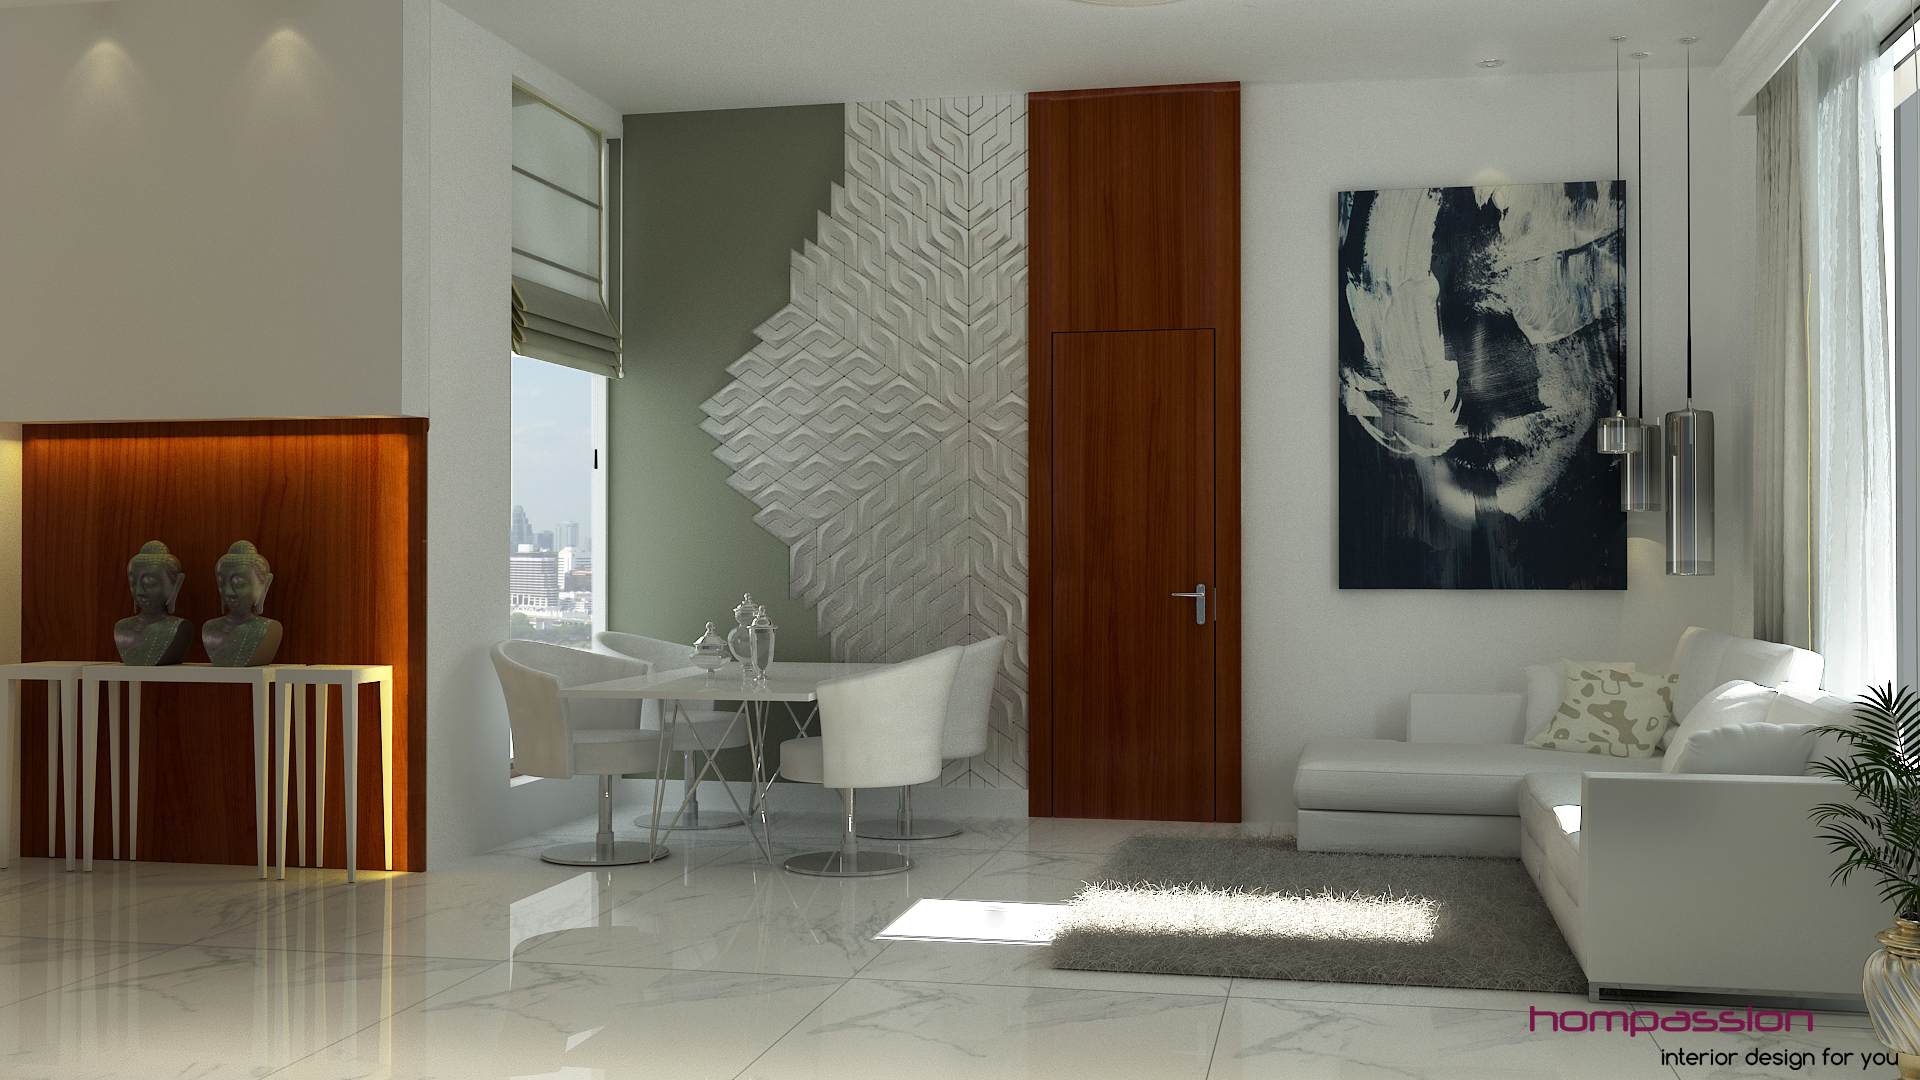 Here's our latest design, a contemporary living room design for 170 sq.ft. – all for around Rs. 4000 per sq.ft. starting with a bare concrete shell.... click for more